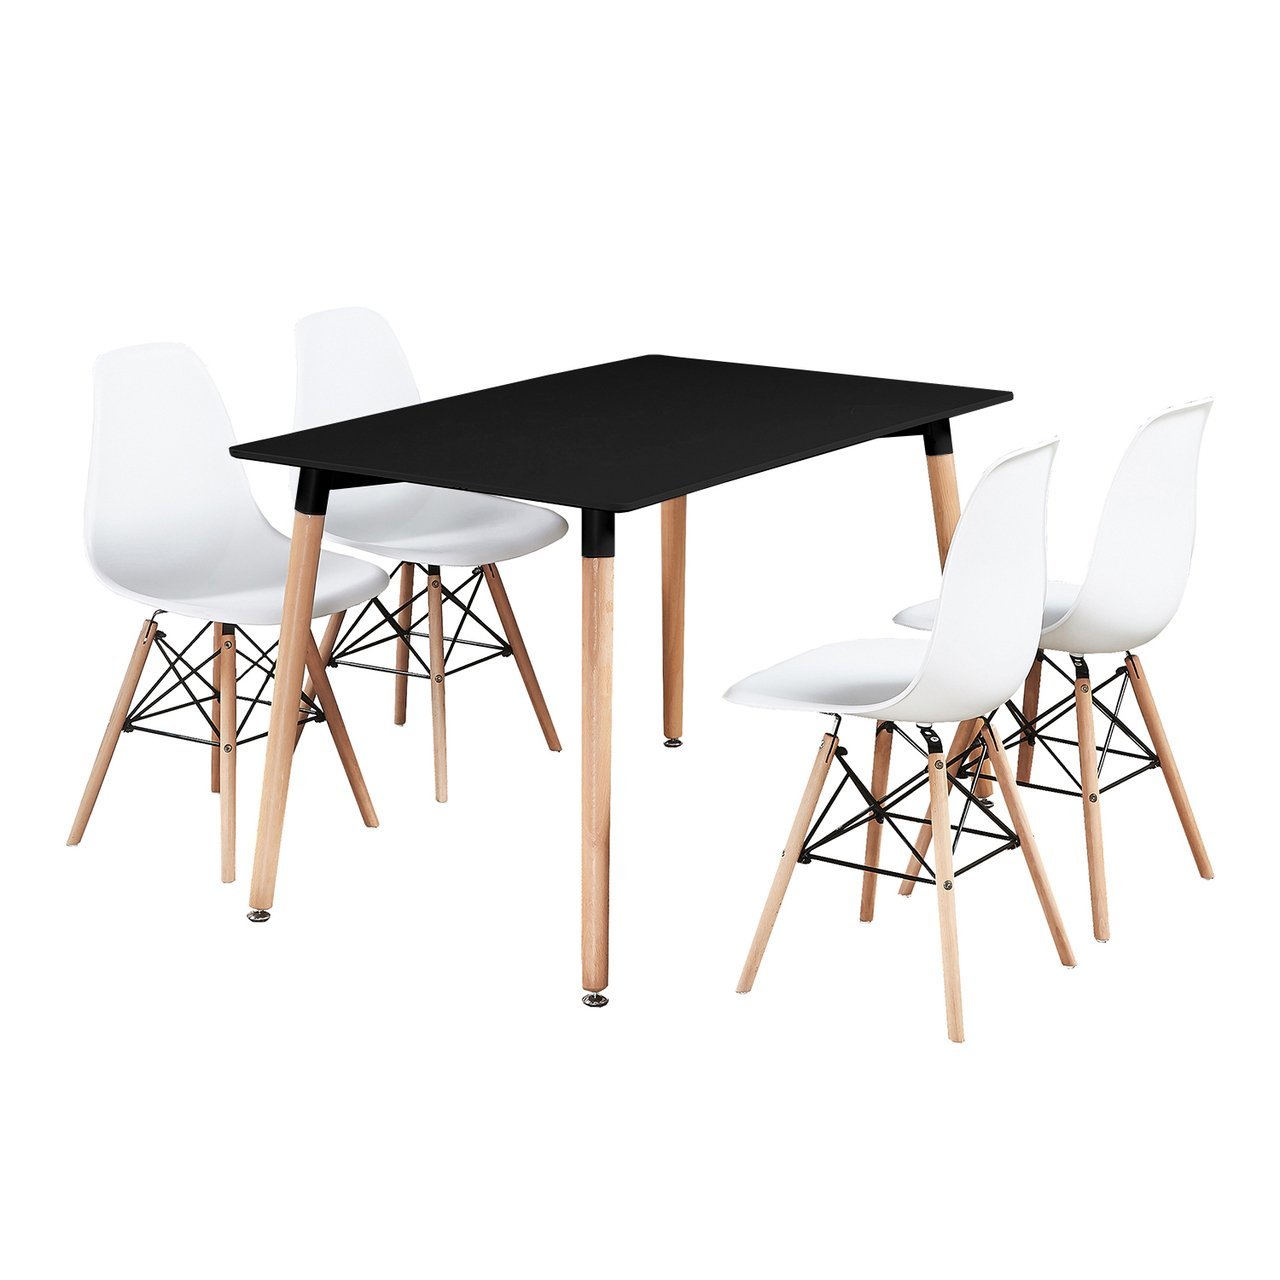 P&N Homewares Moda Eiffel Dining Set (White Chairs, Black Table) | 4 Chairs Dining Room